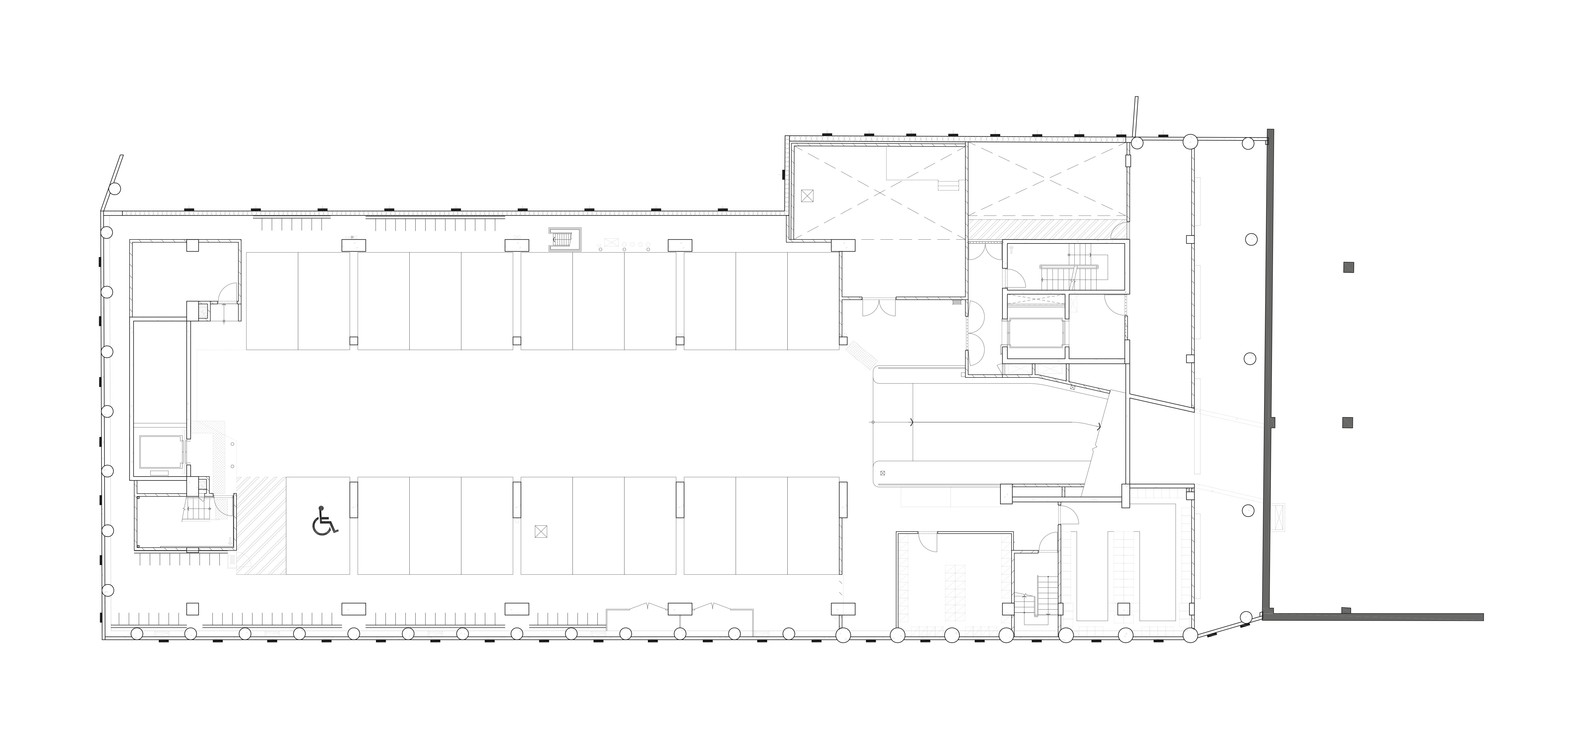 Gallery of CH2 Melbourne City Council House 2 DesignInc 22 – Council House Floor Plans